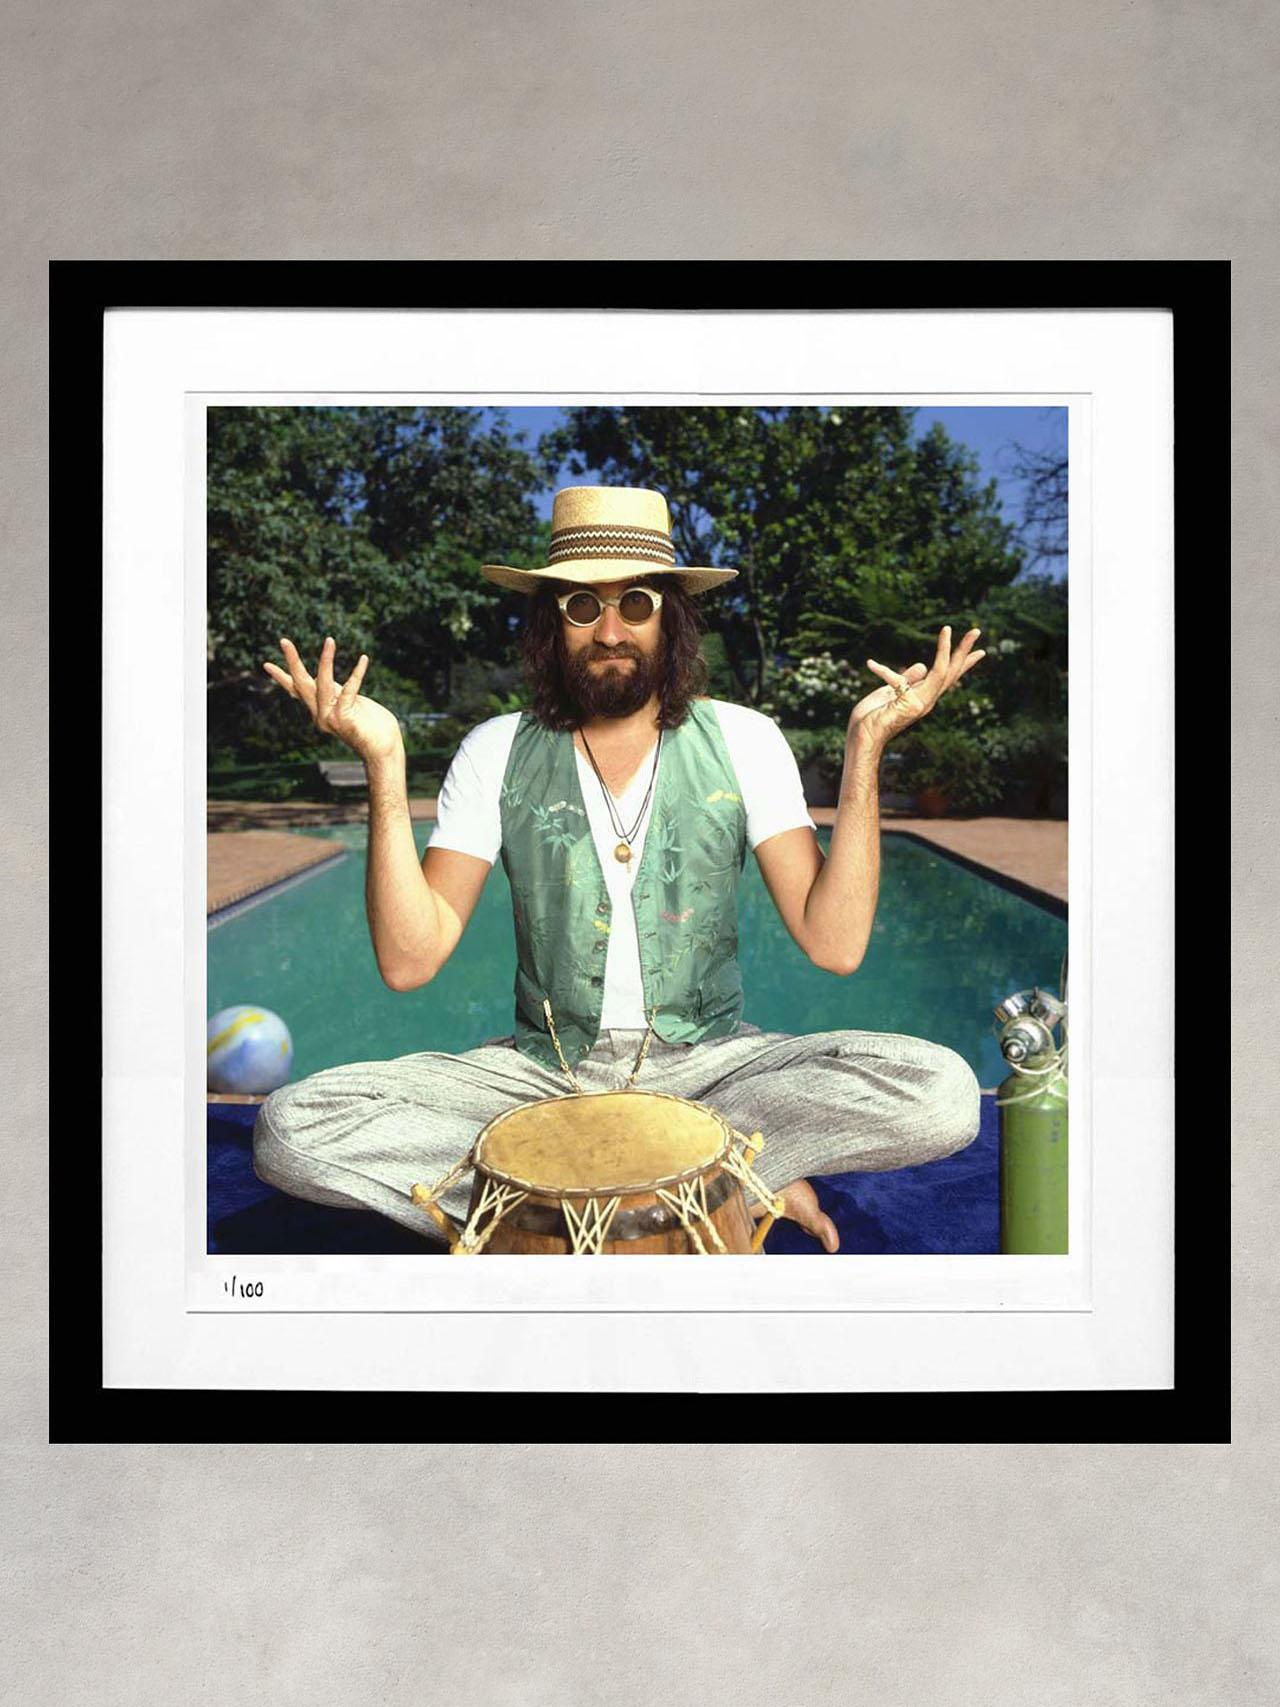 Mick Fleetwood by Aaron Rapoport